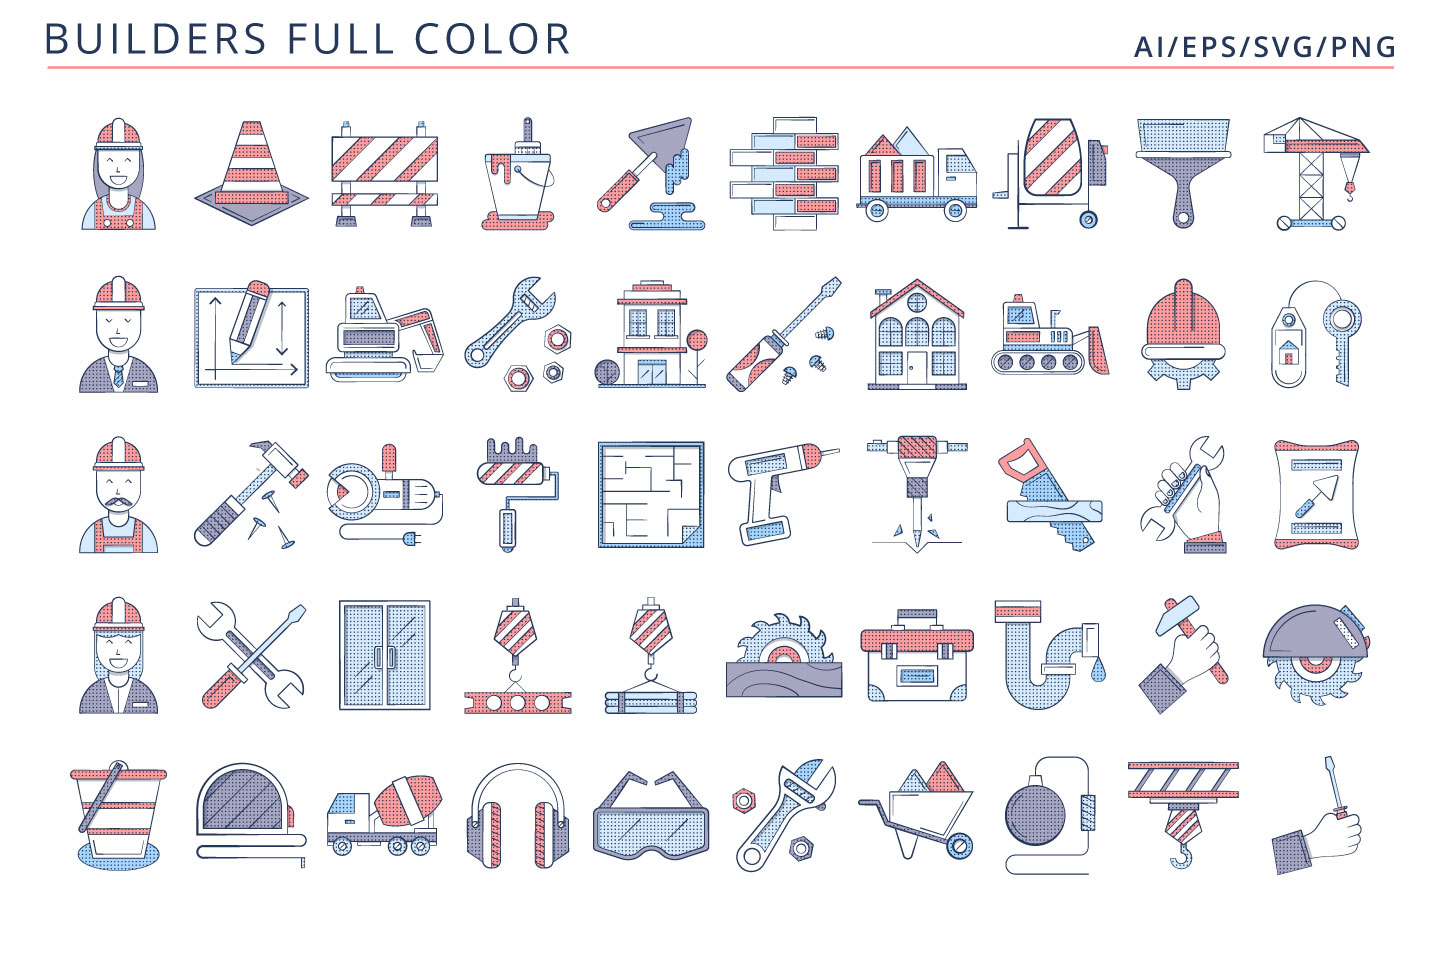 50 Builder Icons (AI, EPS, SVG, PNG files)